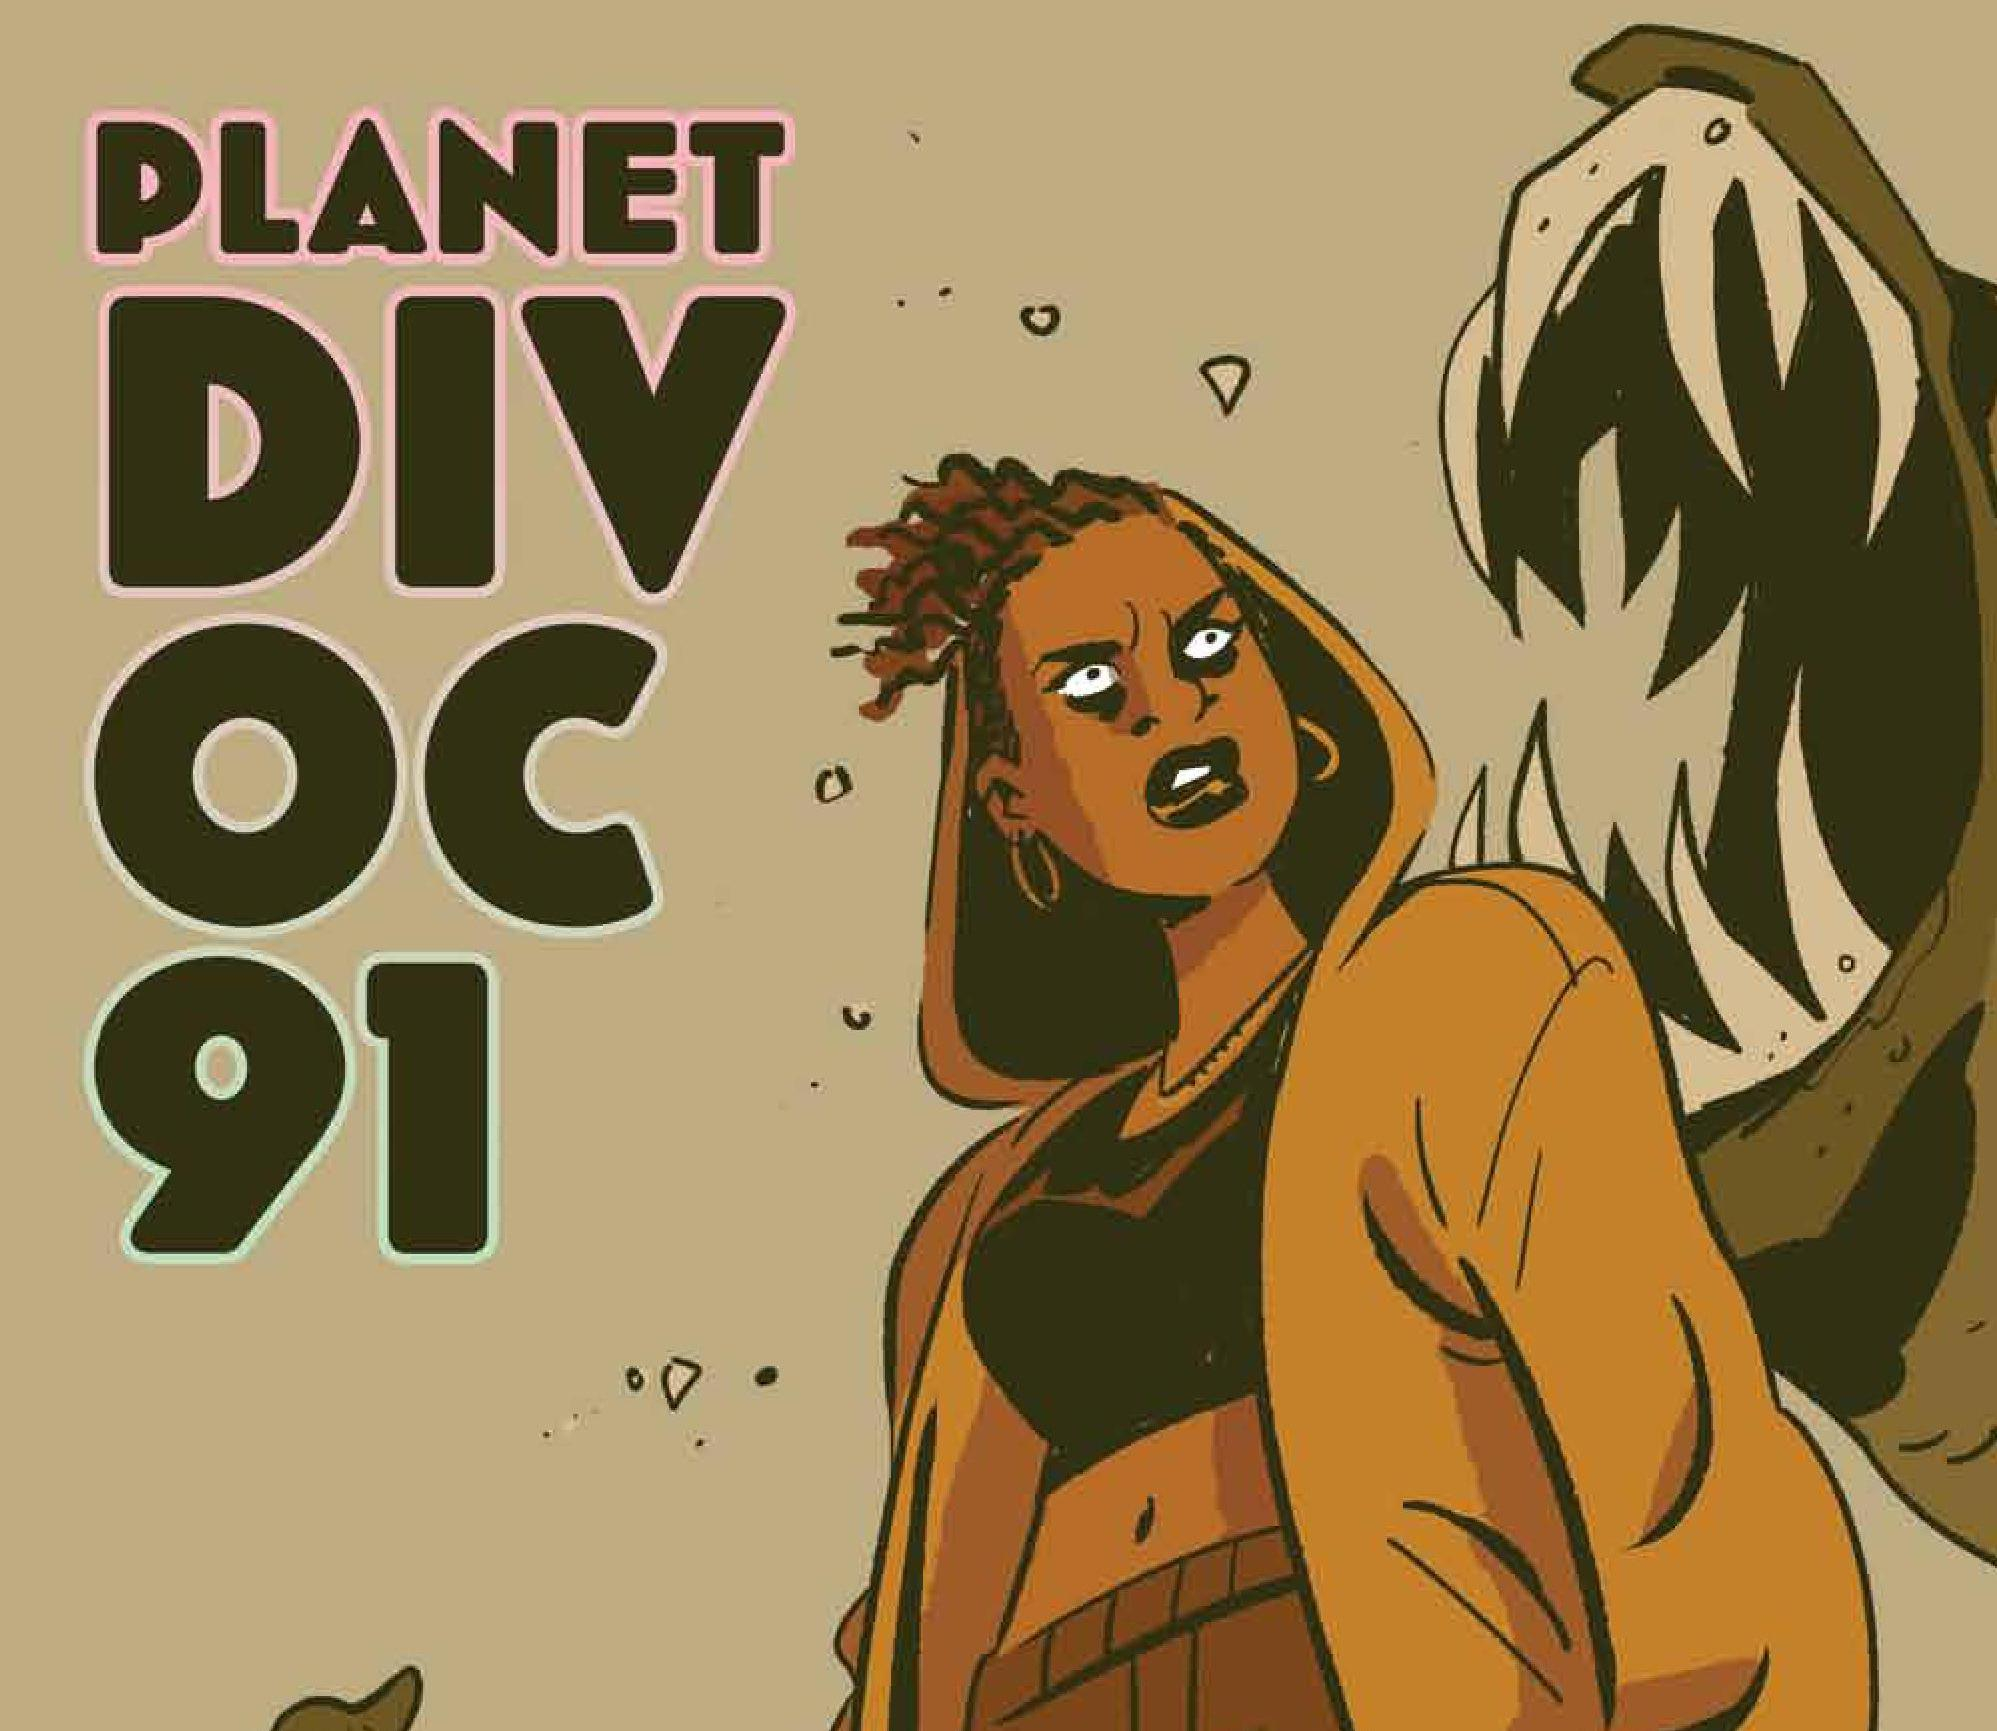 New sci-fi satire webcomic PLANET DIVOC-91 debuts July 15, 2020 on Webtoon